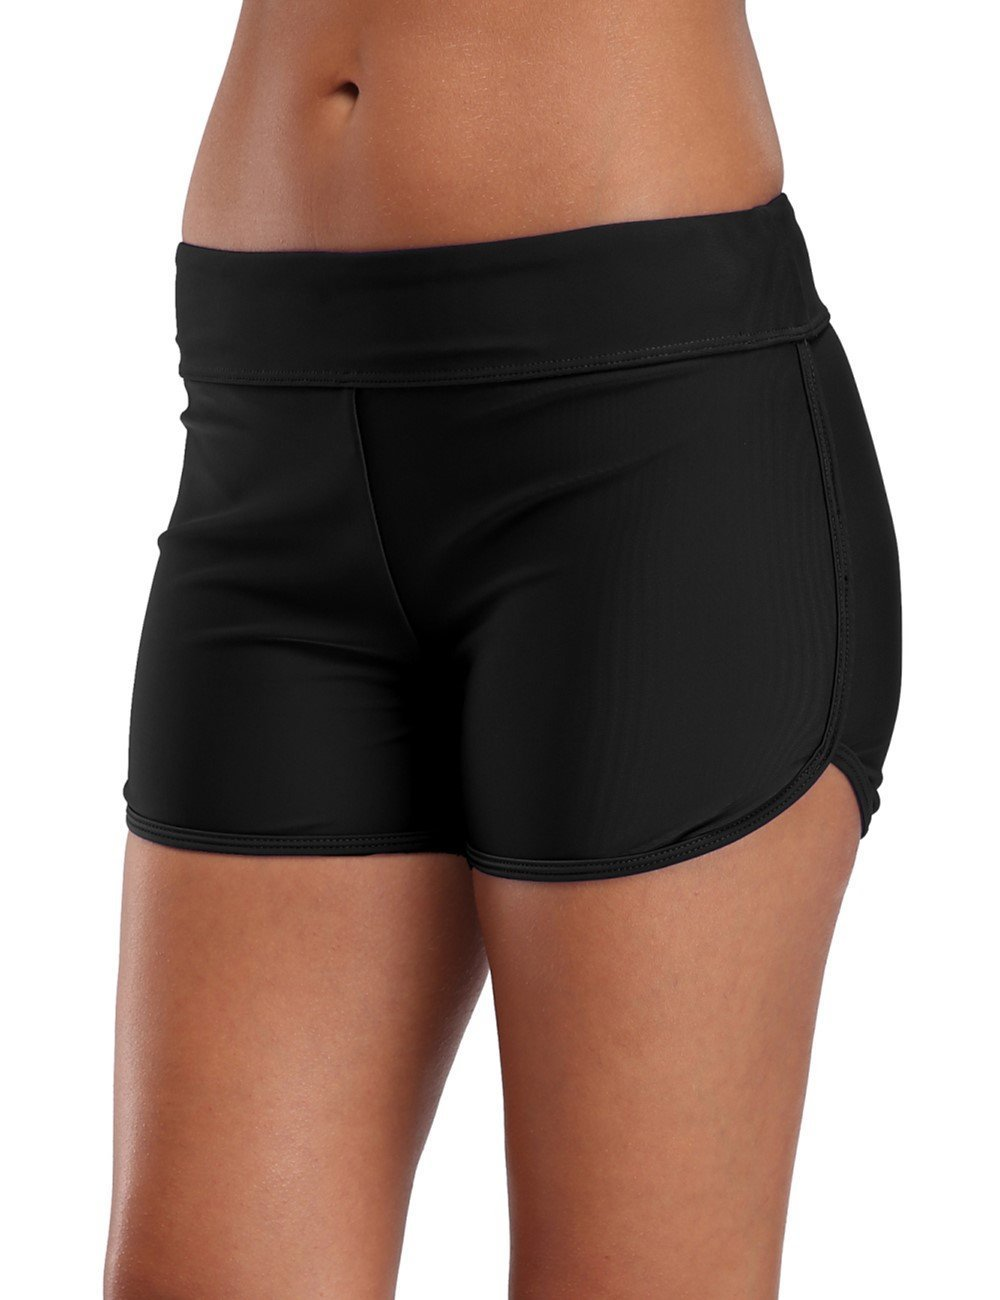 eulo Women's Solid Boardshorts Swim Shorts Stretch Sports Shorts Bottom Black L